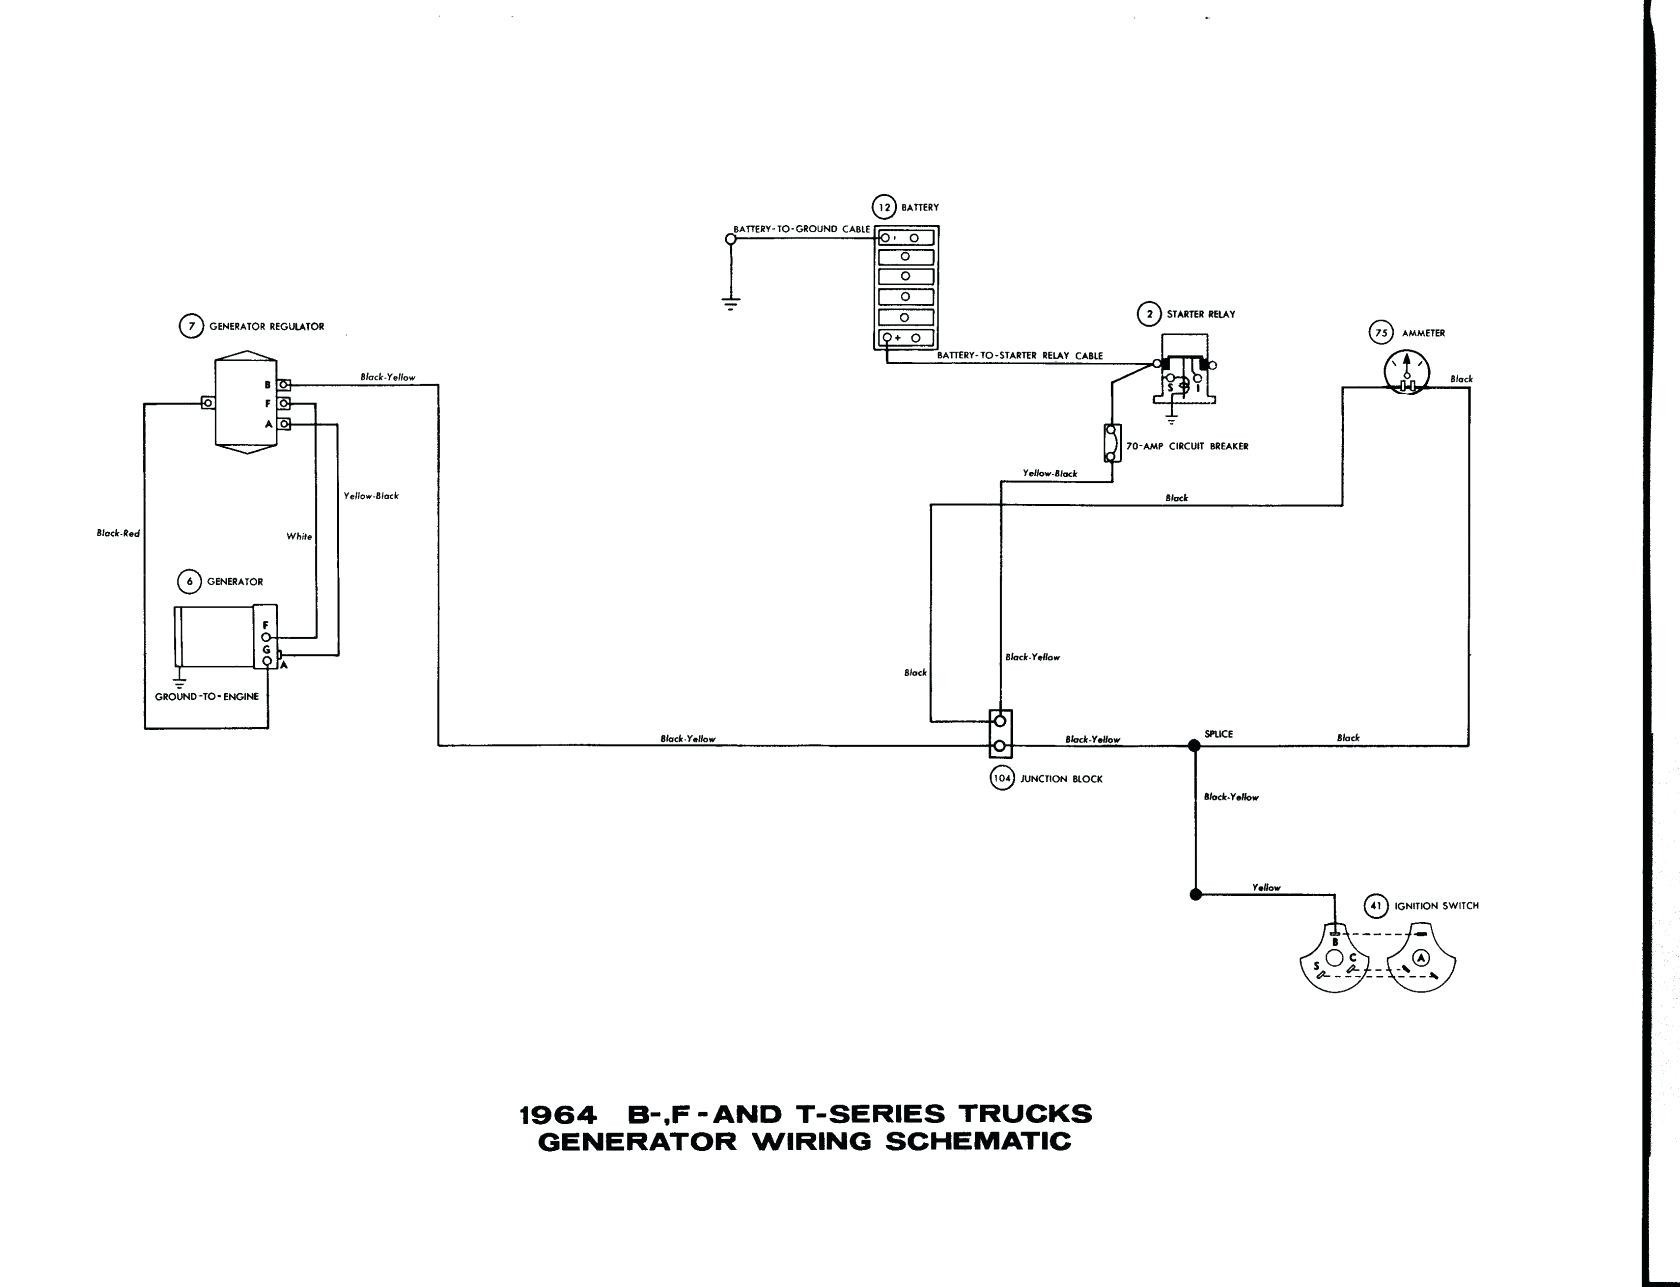 ac delco alternator wiring diagram Collection-Wiring Diagram For Ac Delco Alternator New Wiring Diagram Alternator Voltage Regulator Fresh 4 Wire Alternator 12-r